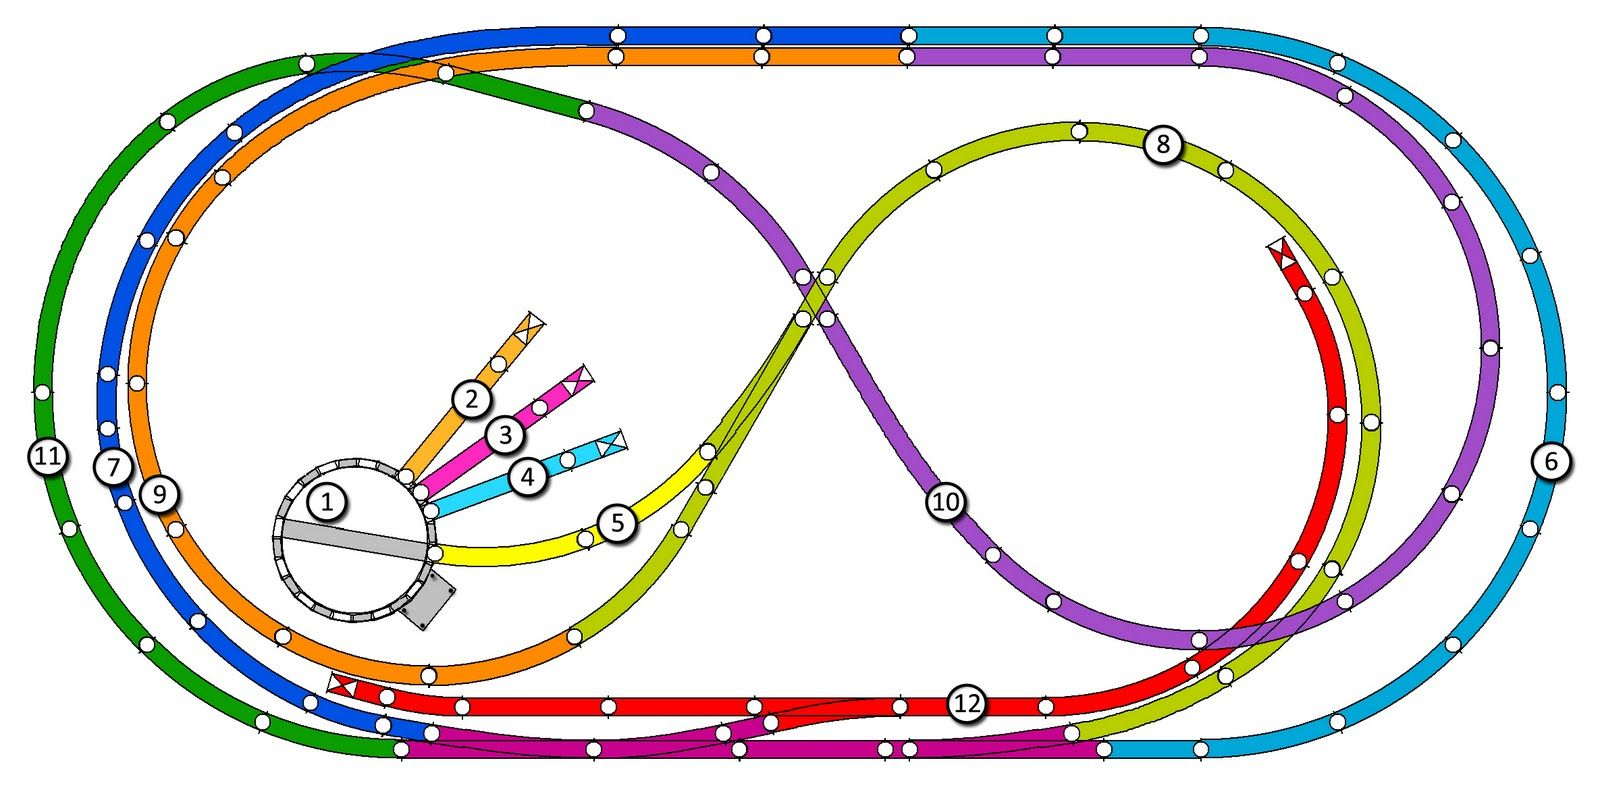 hight resolution of rr train track wiring created with atlas right track software i then imported this